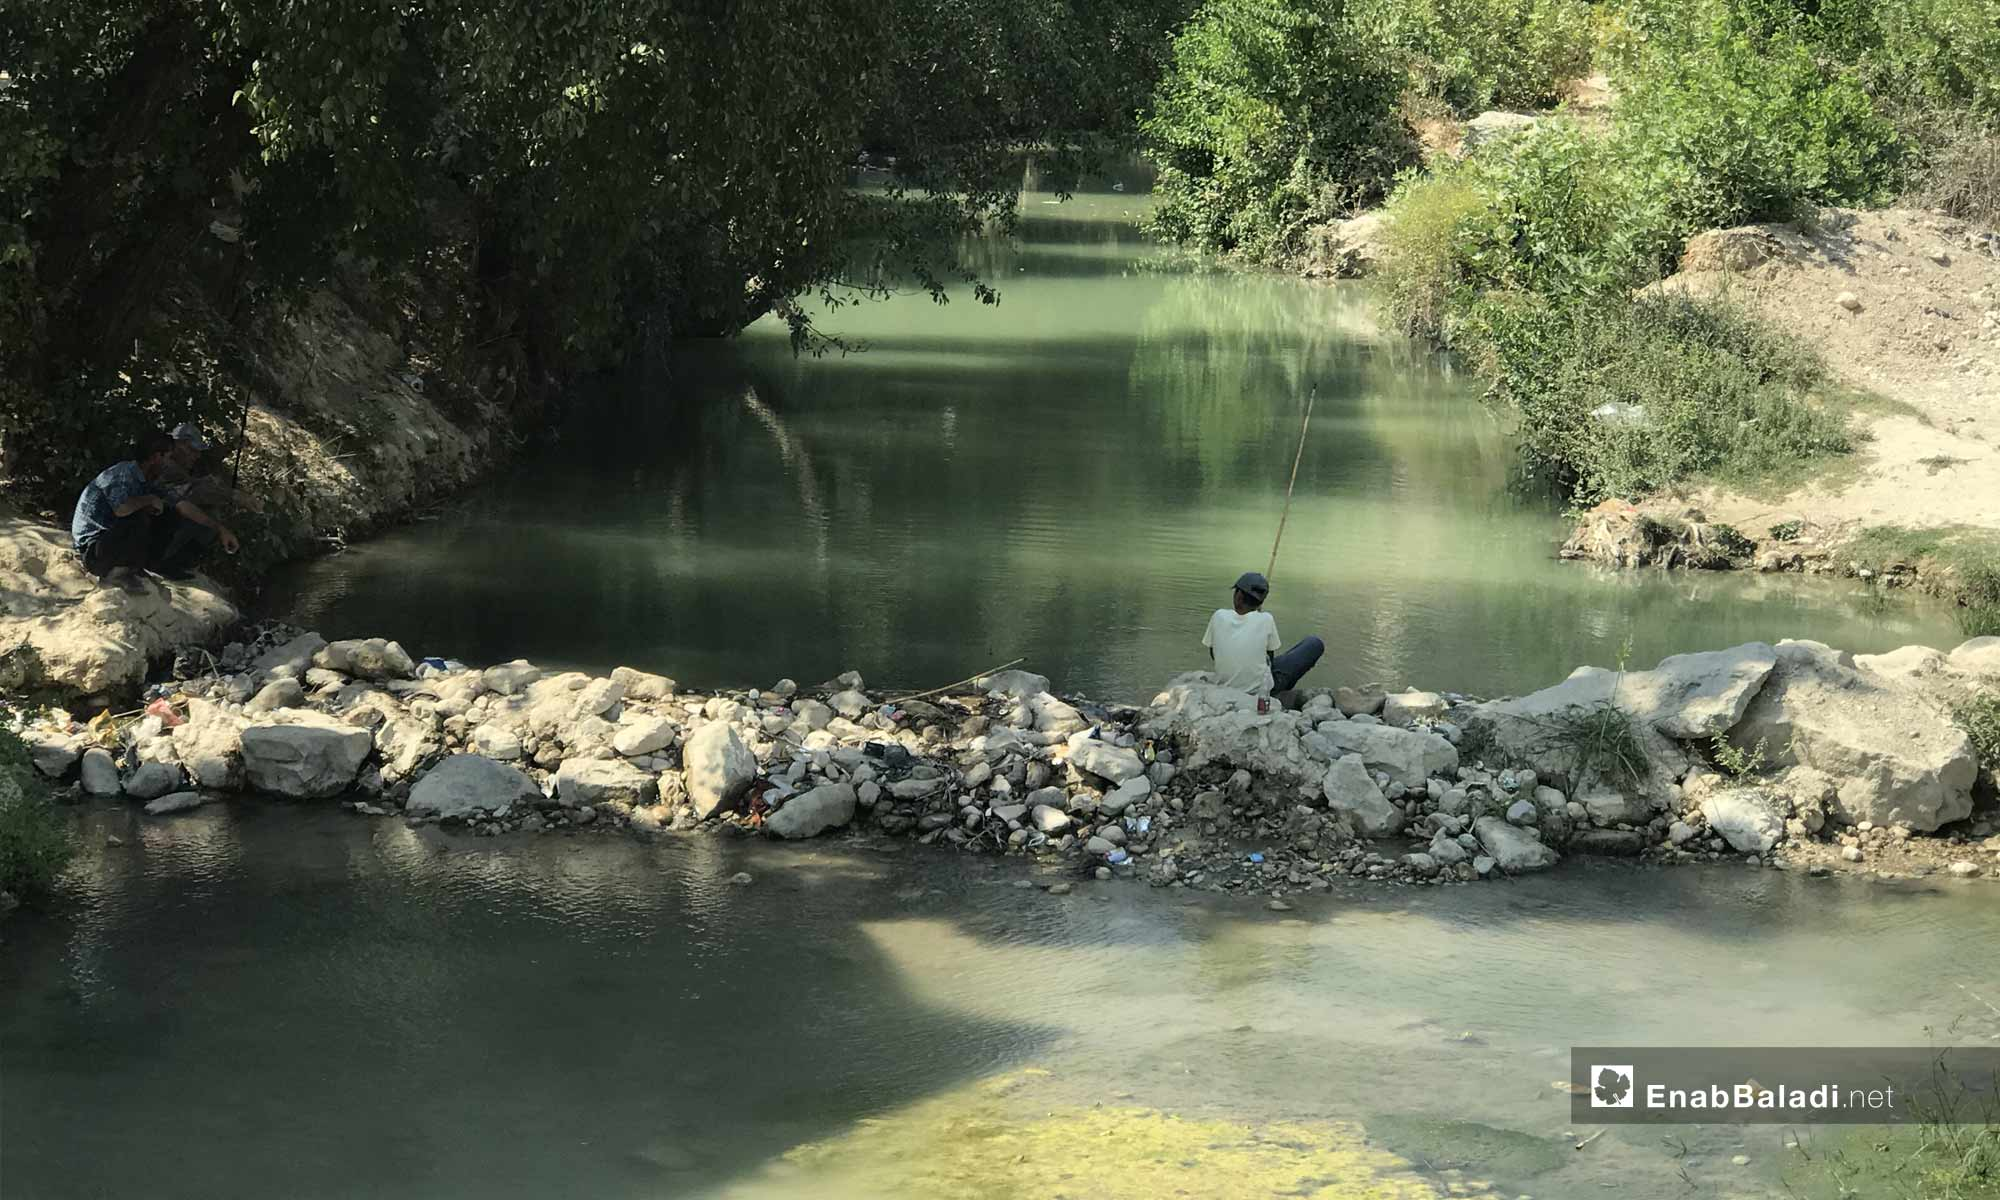 A young man fishing in the Assi River, near the city of Darkoush, western rural Idlib -September 8, 2019 (Enab Baladi)